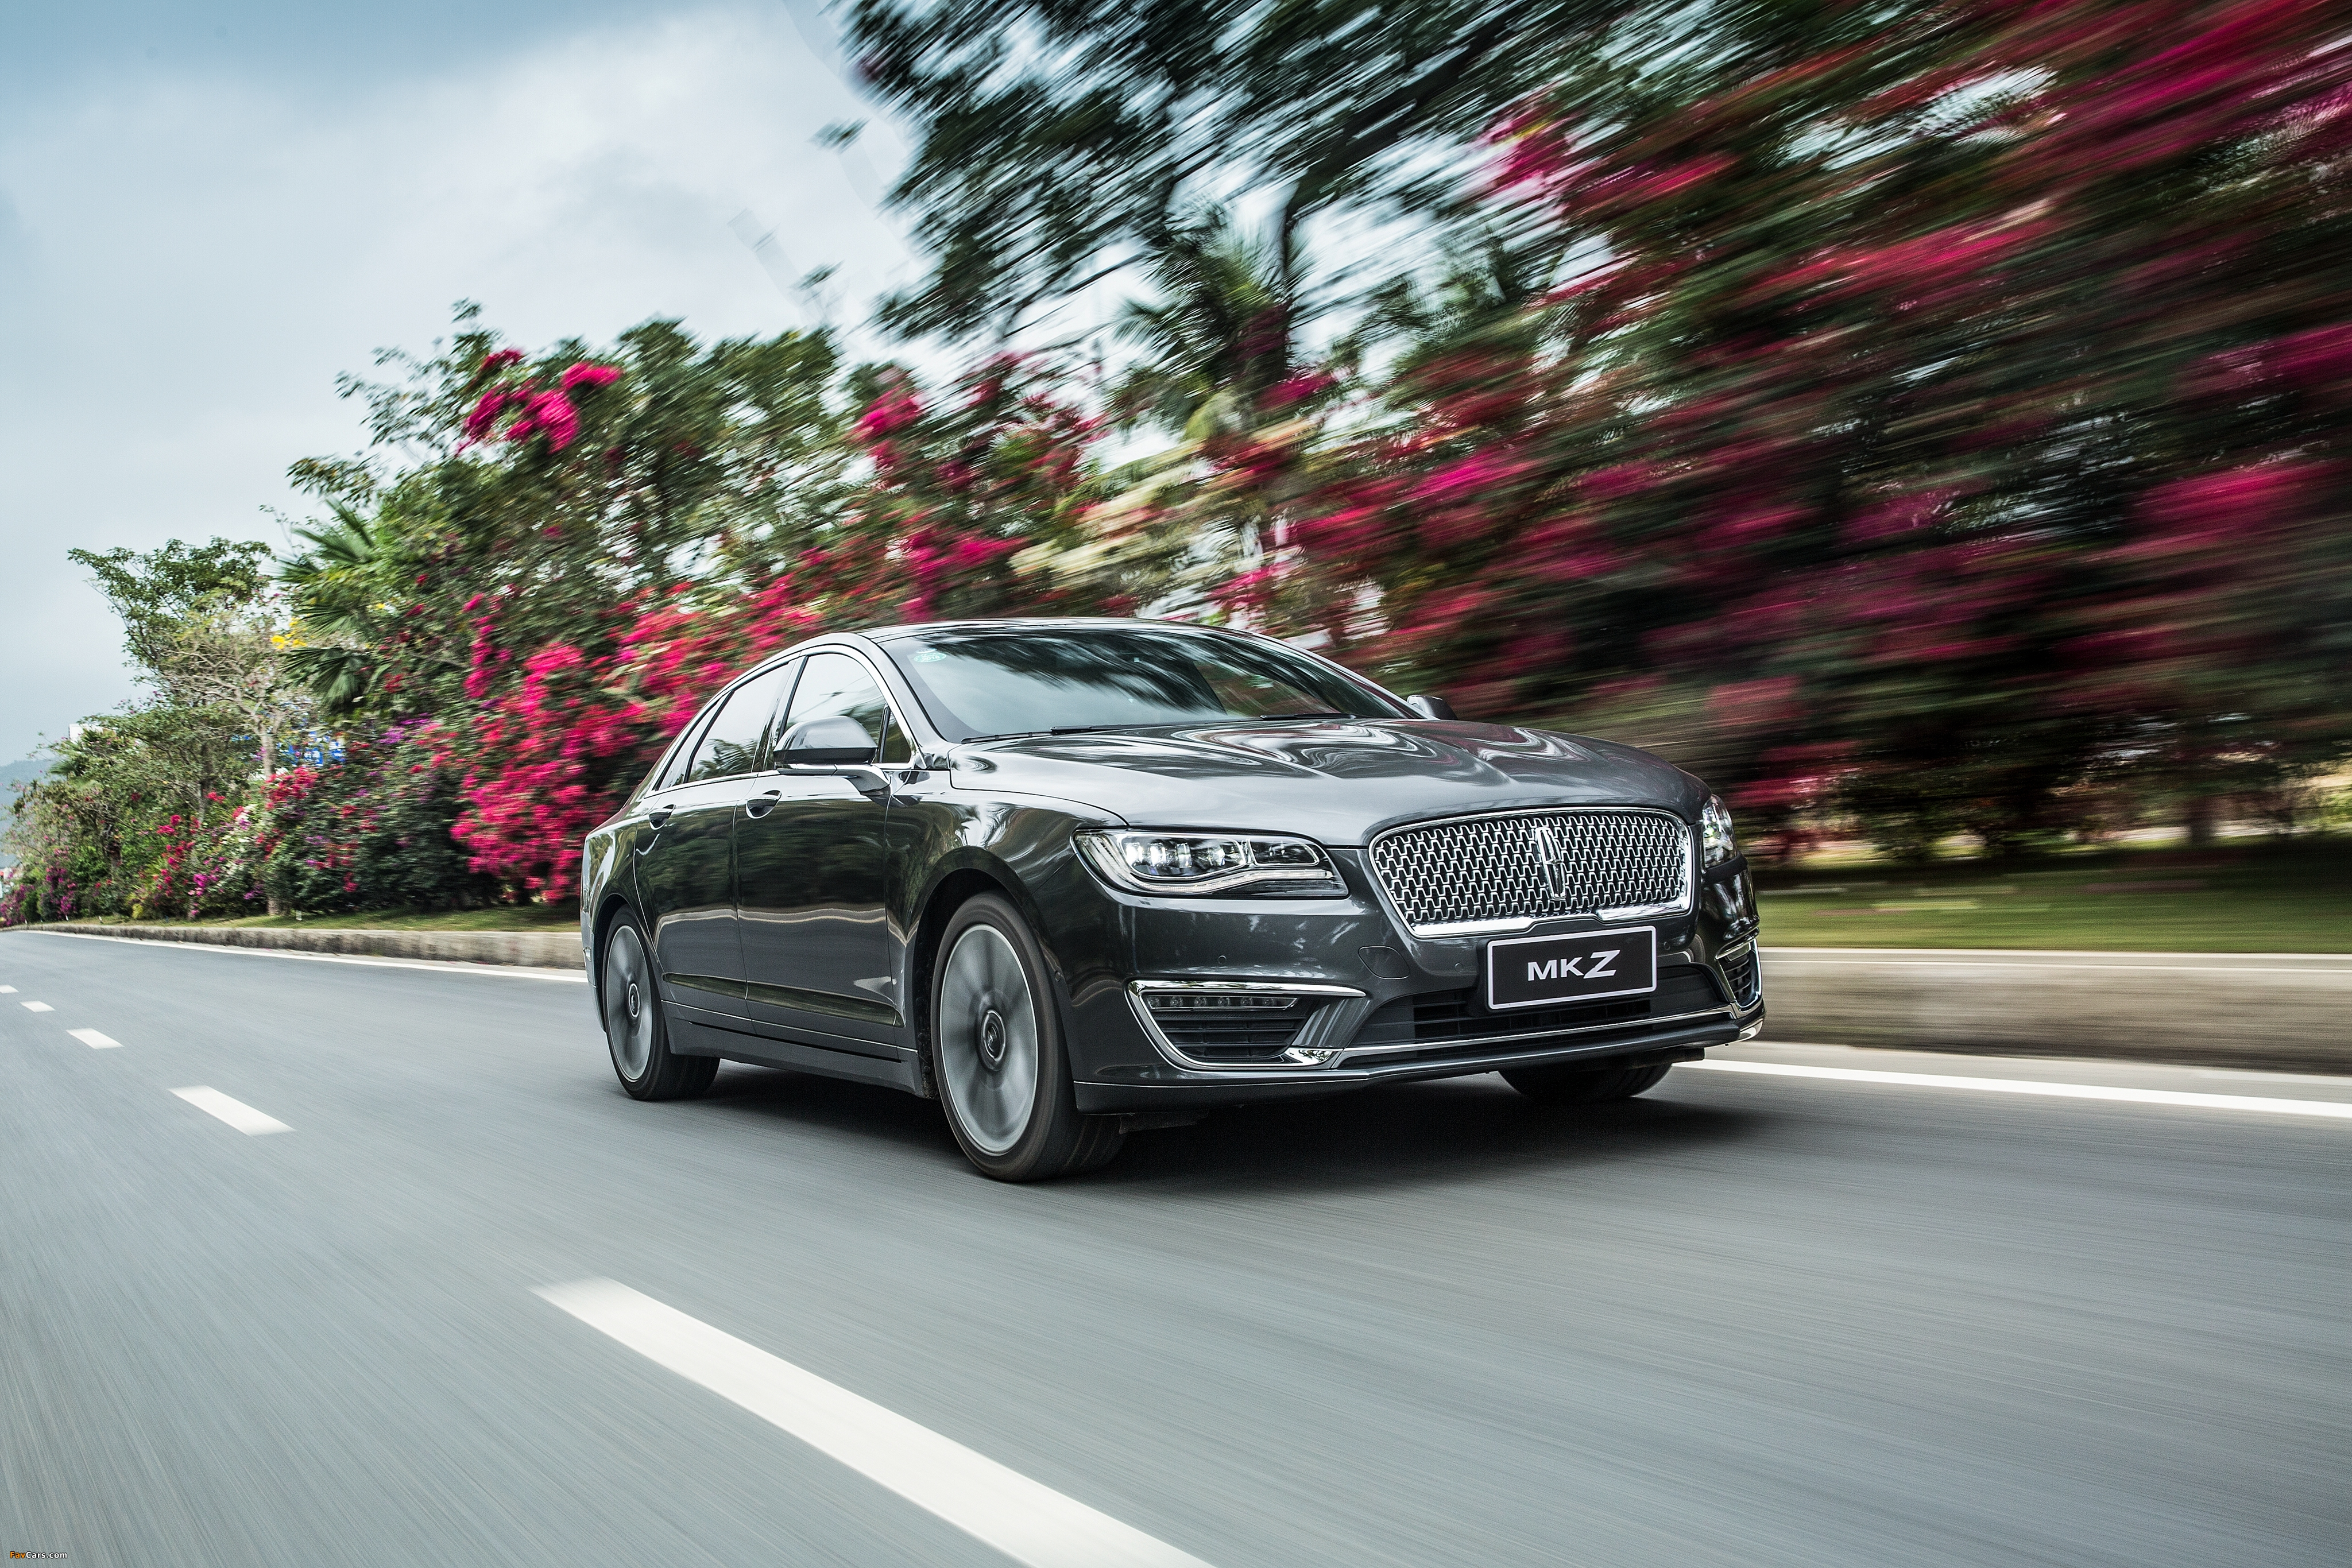 Lincoln MKZ H China 2017 images (4096 x 2731)